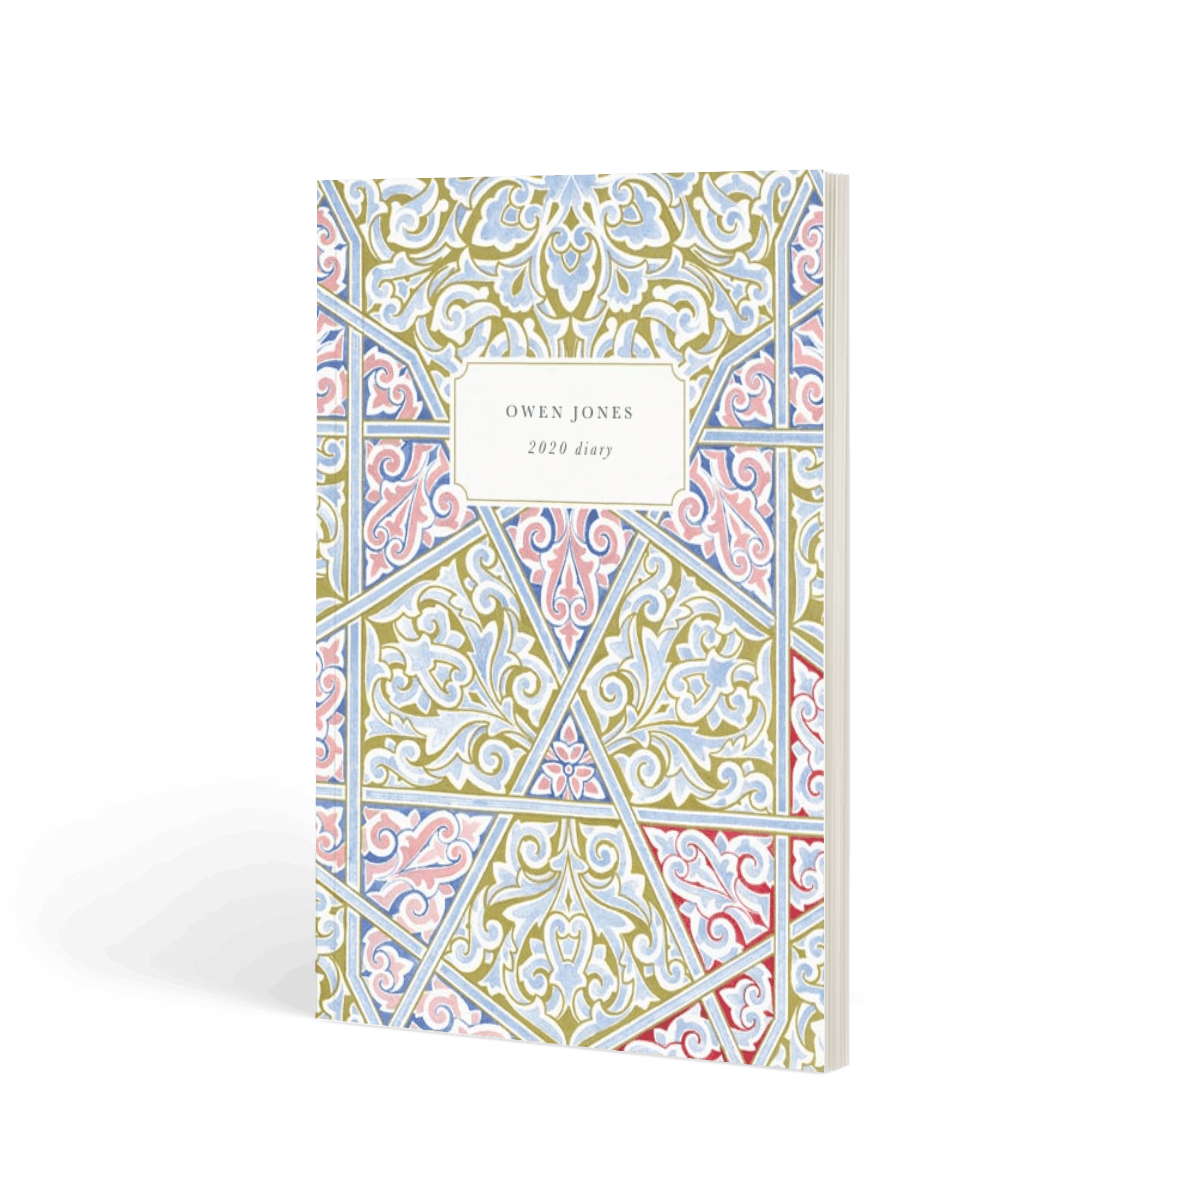 Https%3a%2f%2fwww.papier.com%2fproduct image%2f31092%2f7%2fpastel filigree 7812 front 1562674304.png?ixlib=rb 1.1